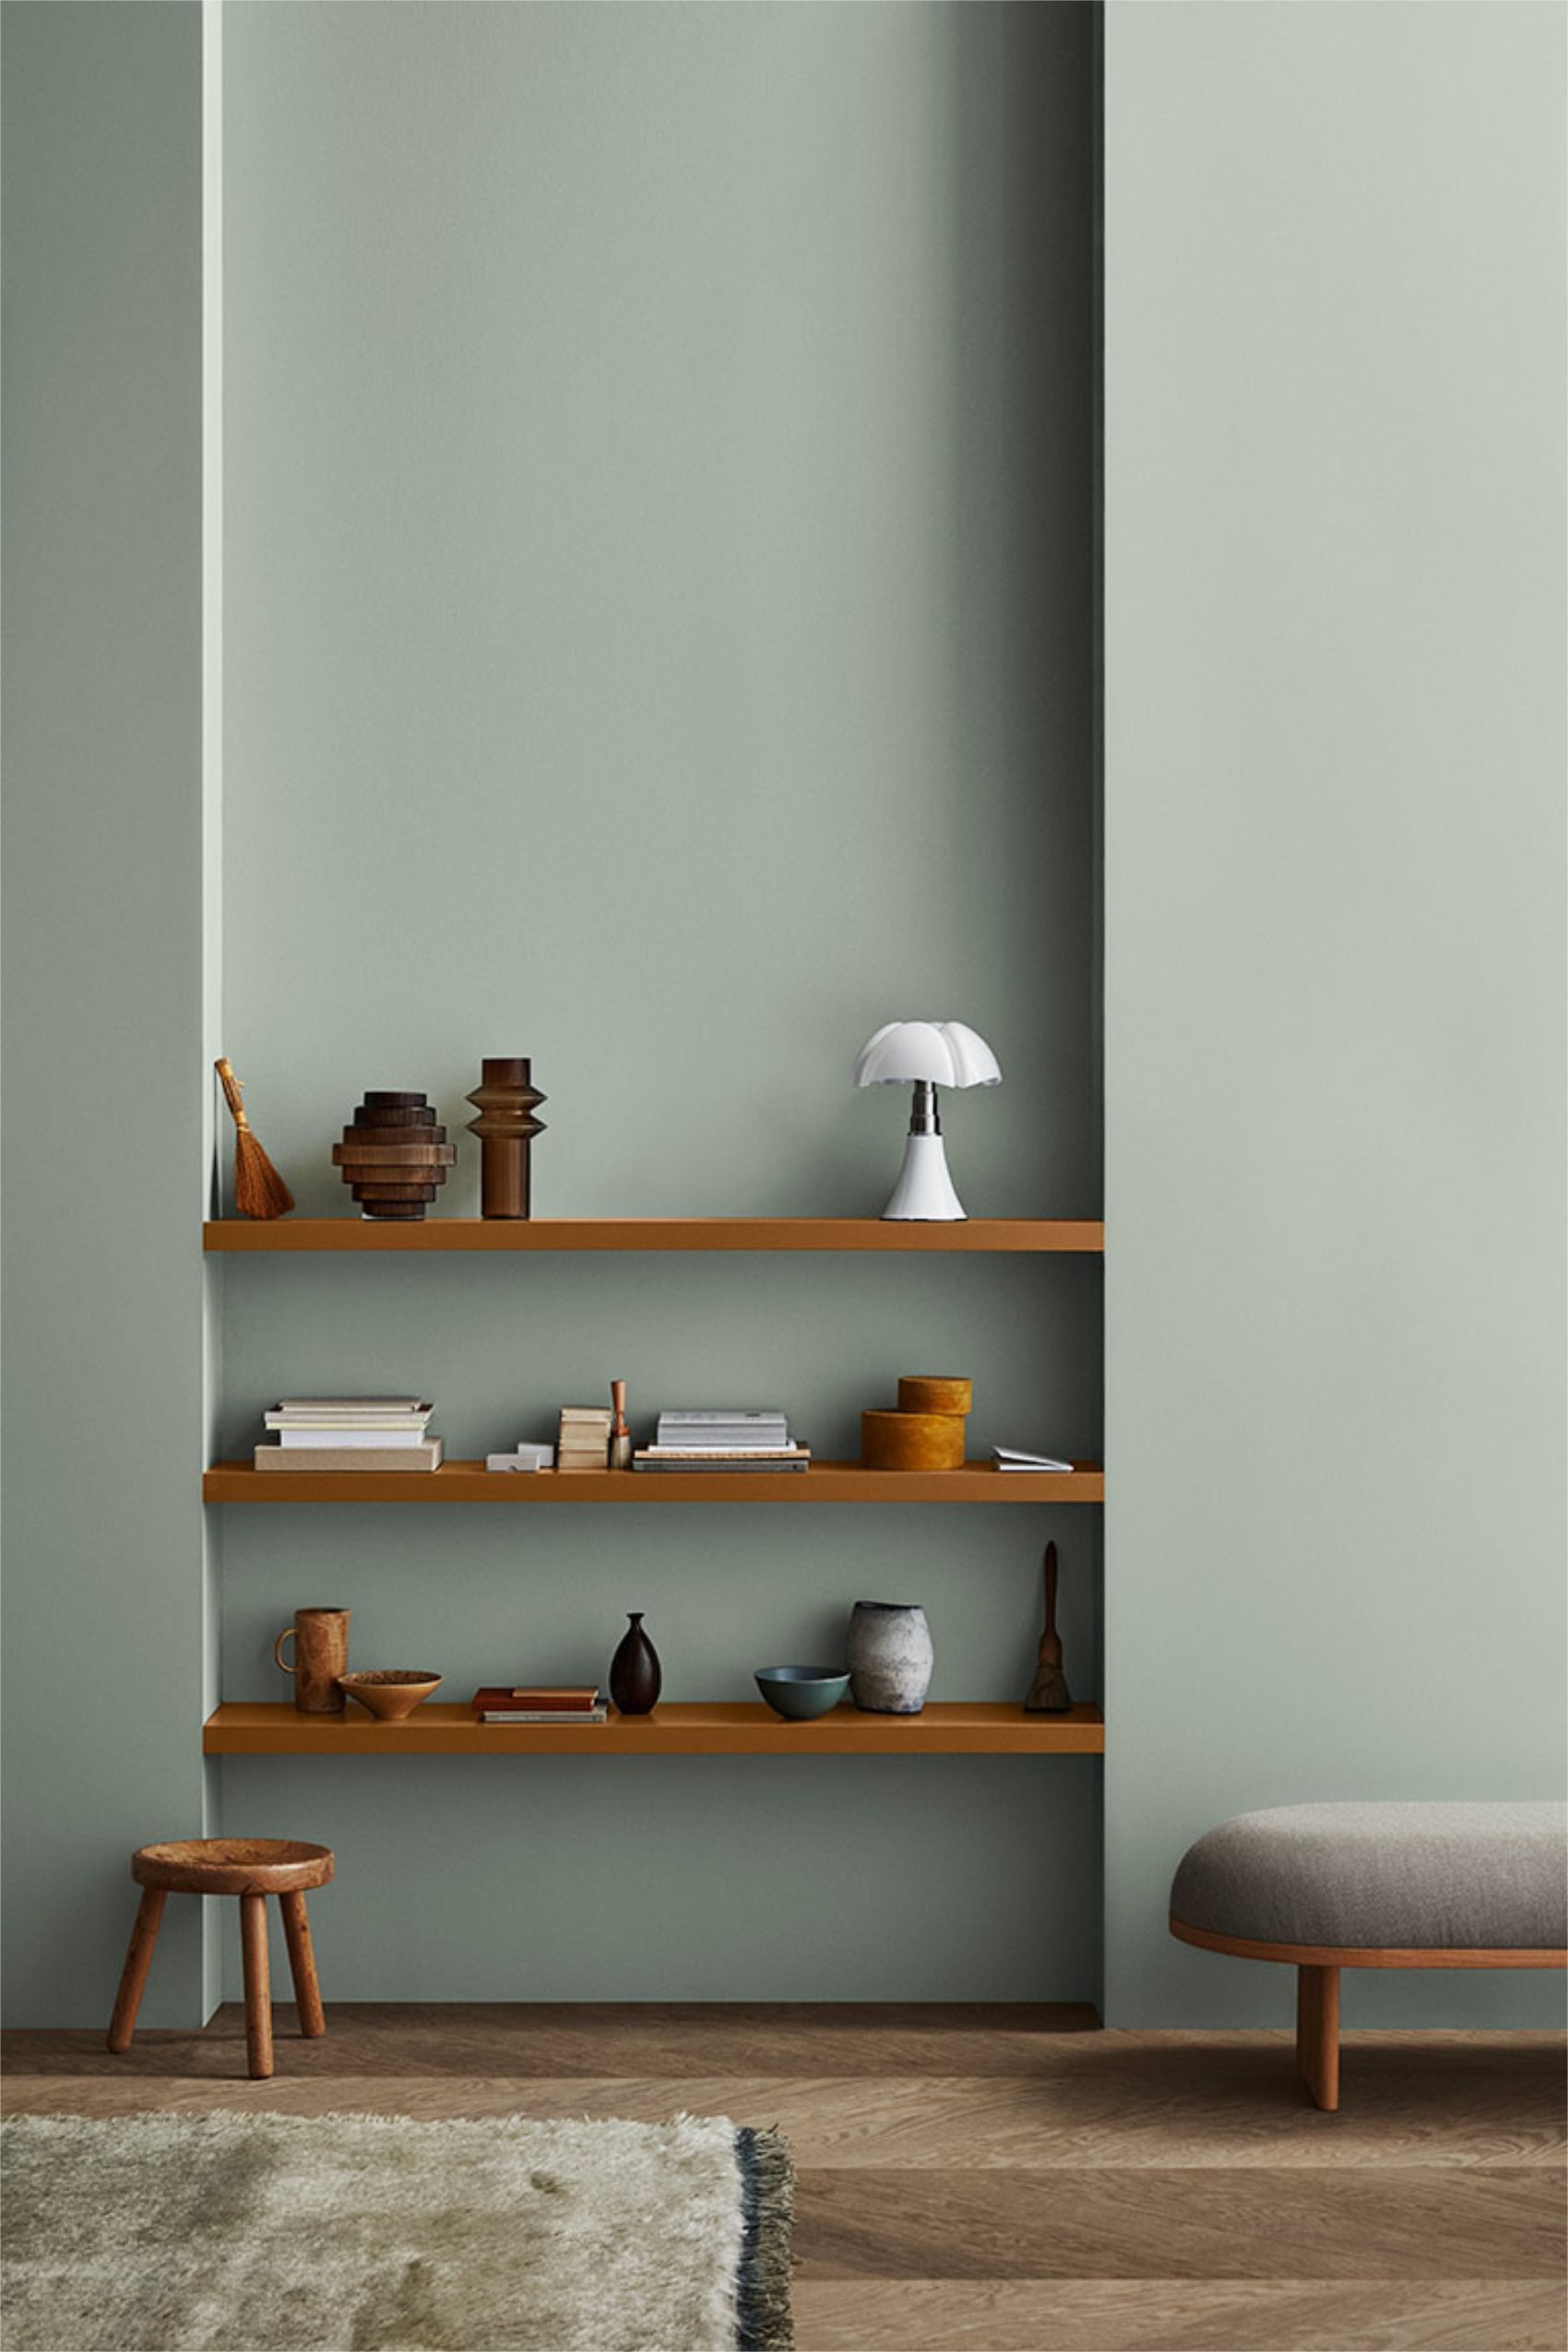 THE SCANDINAVIAN INTERIOR COLOUR TRENDS OF 2020 FROM JOTUN LADY